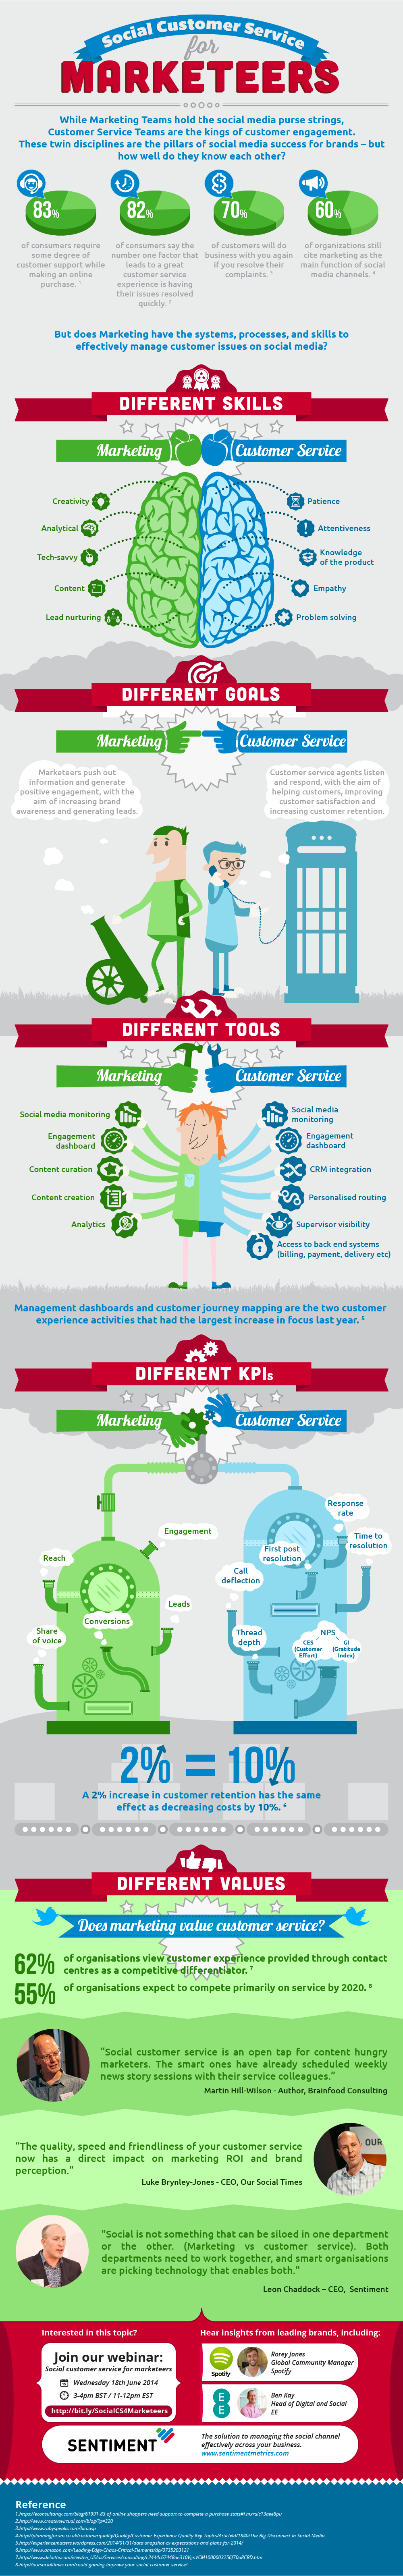 final-infographic-social-customer-service-for-marketeers-